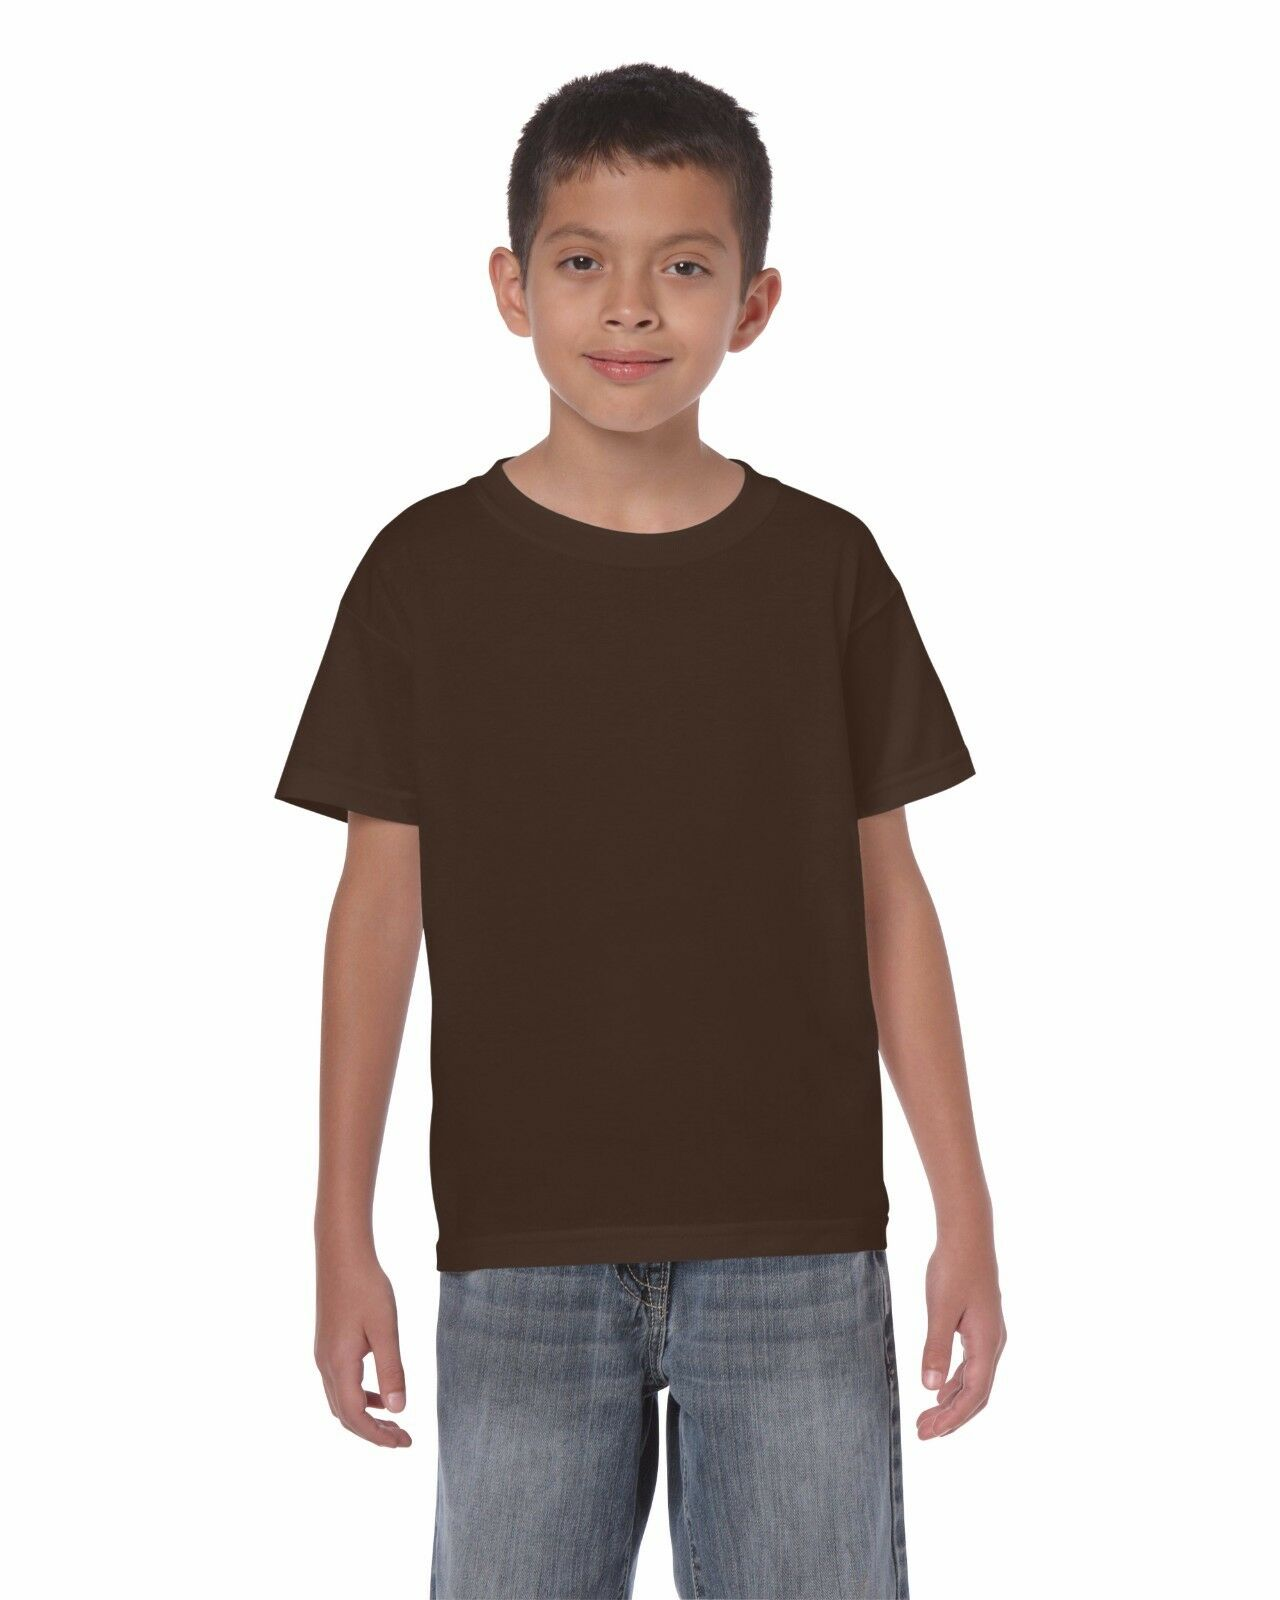 Find great deals on eBay for boys brown shirts. Shop with confidence.